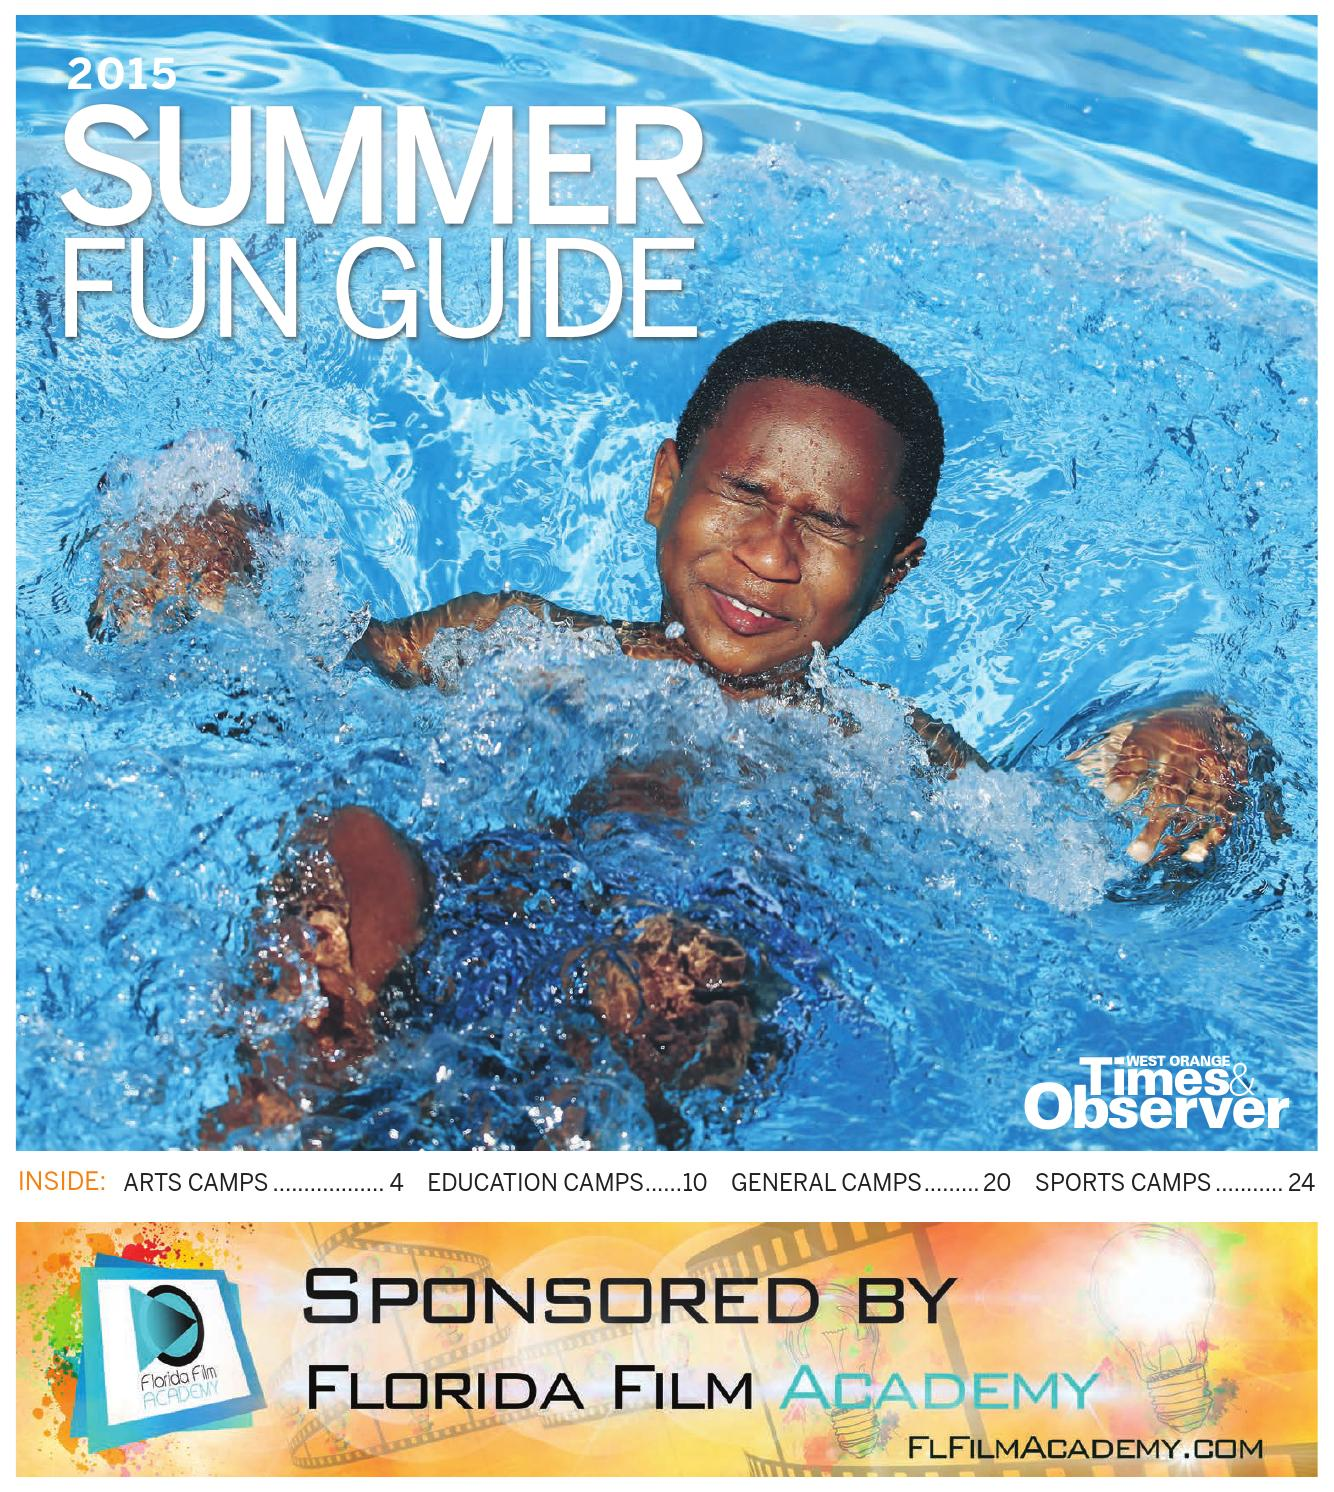 03 26 15 west orange times u0026 observer 2015 summer fun guide by